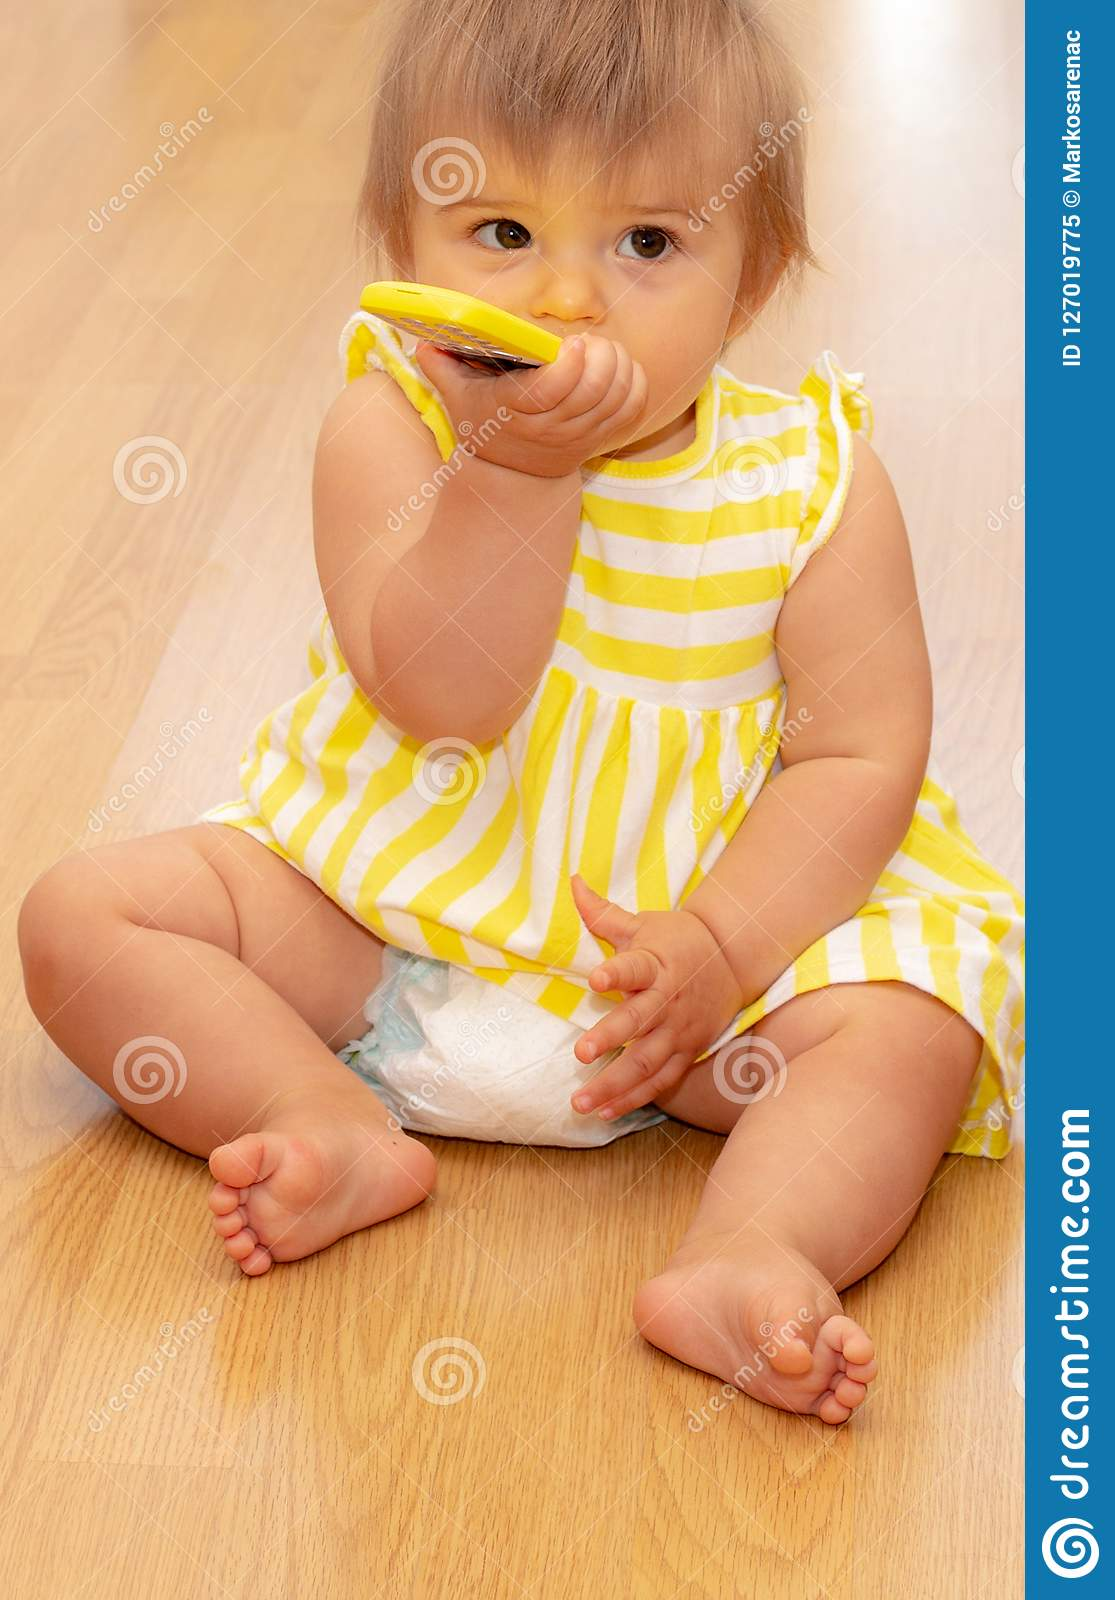 Baby Girl Phone Yellow Dress Cute 2 Stock Image Image Of Gladness Generation 127019775